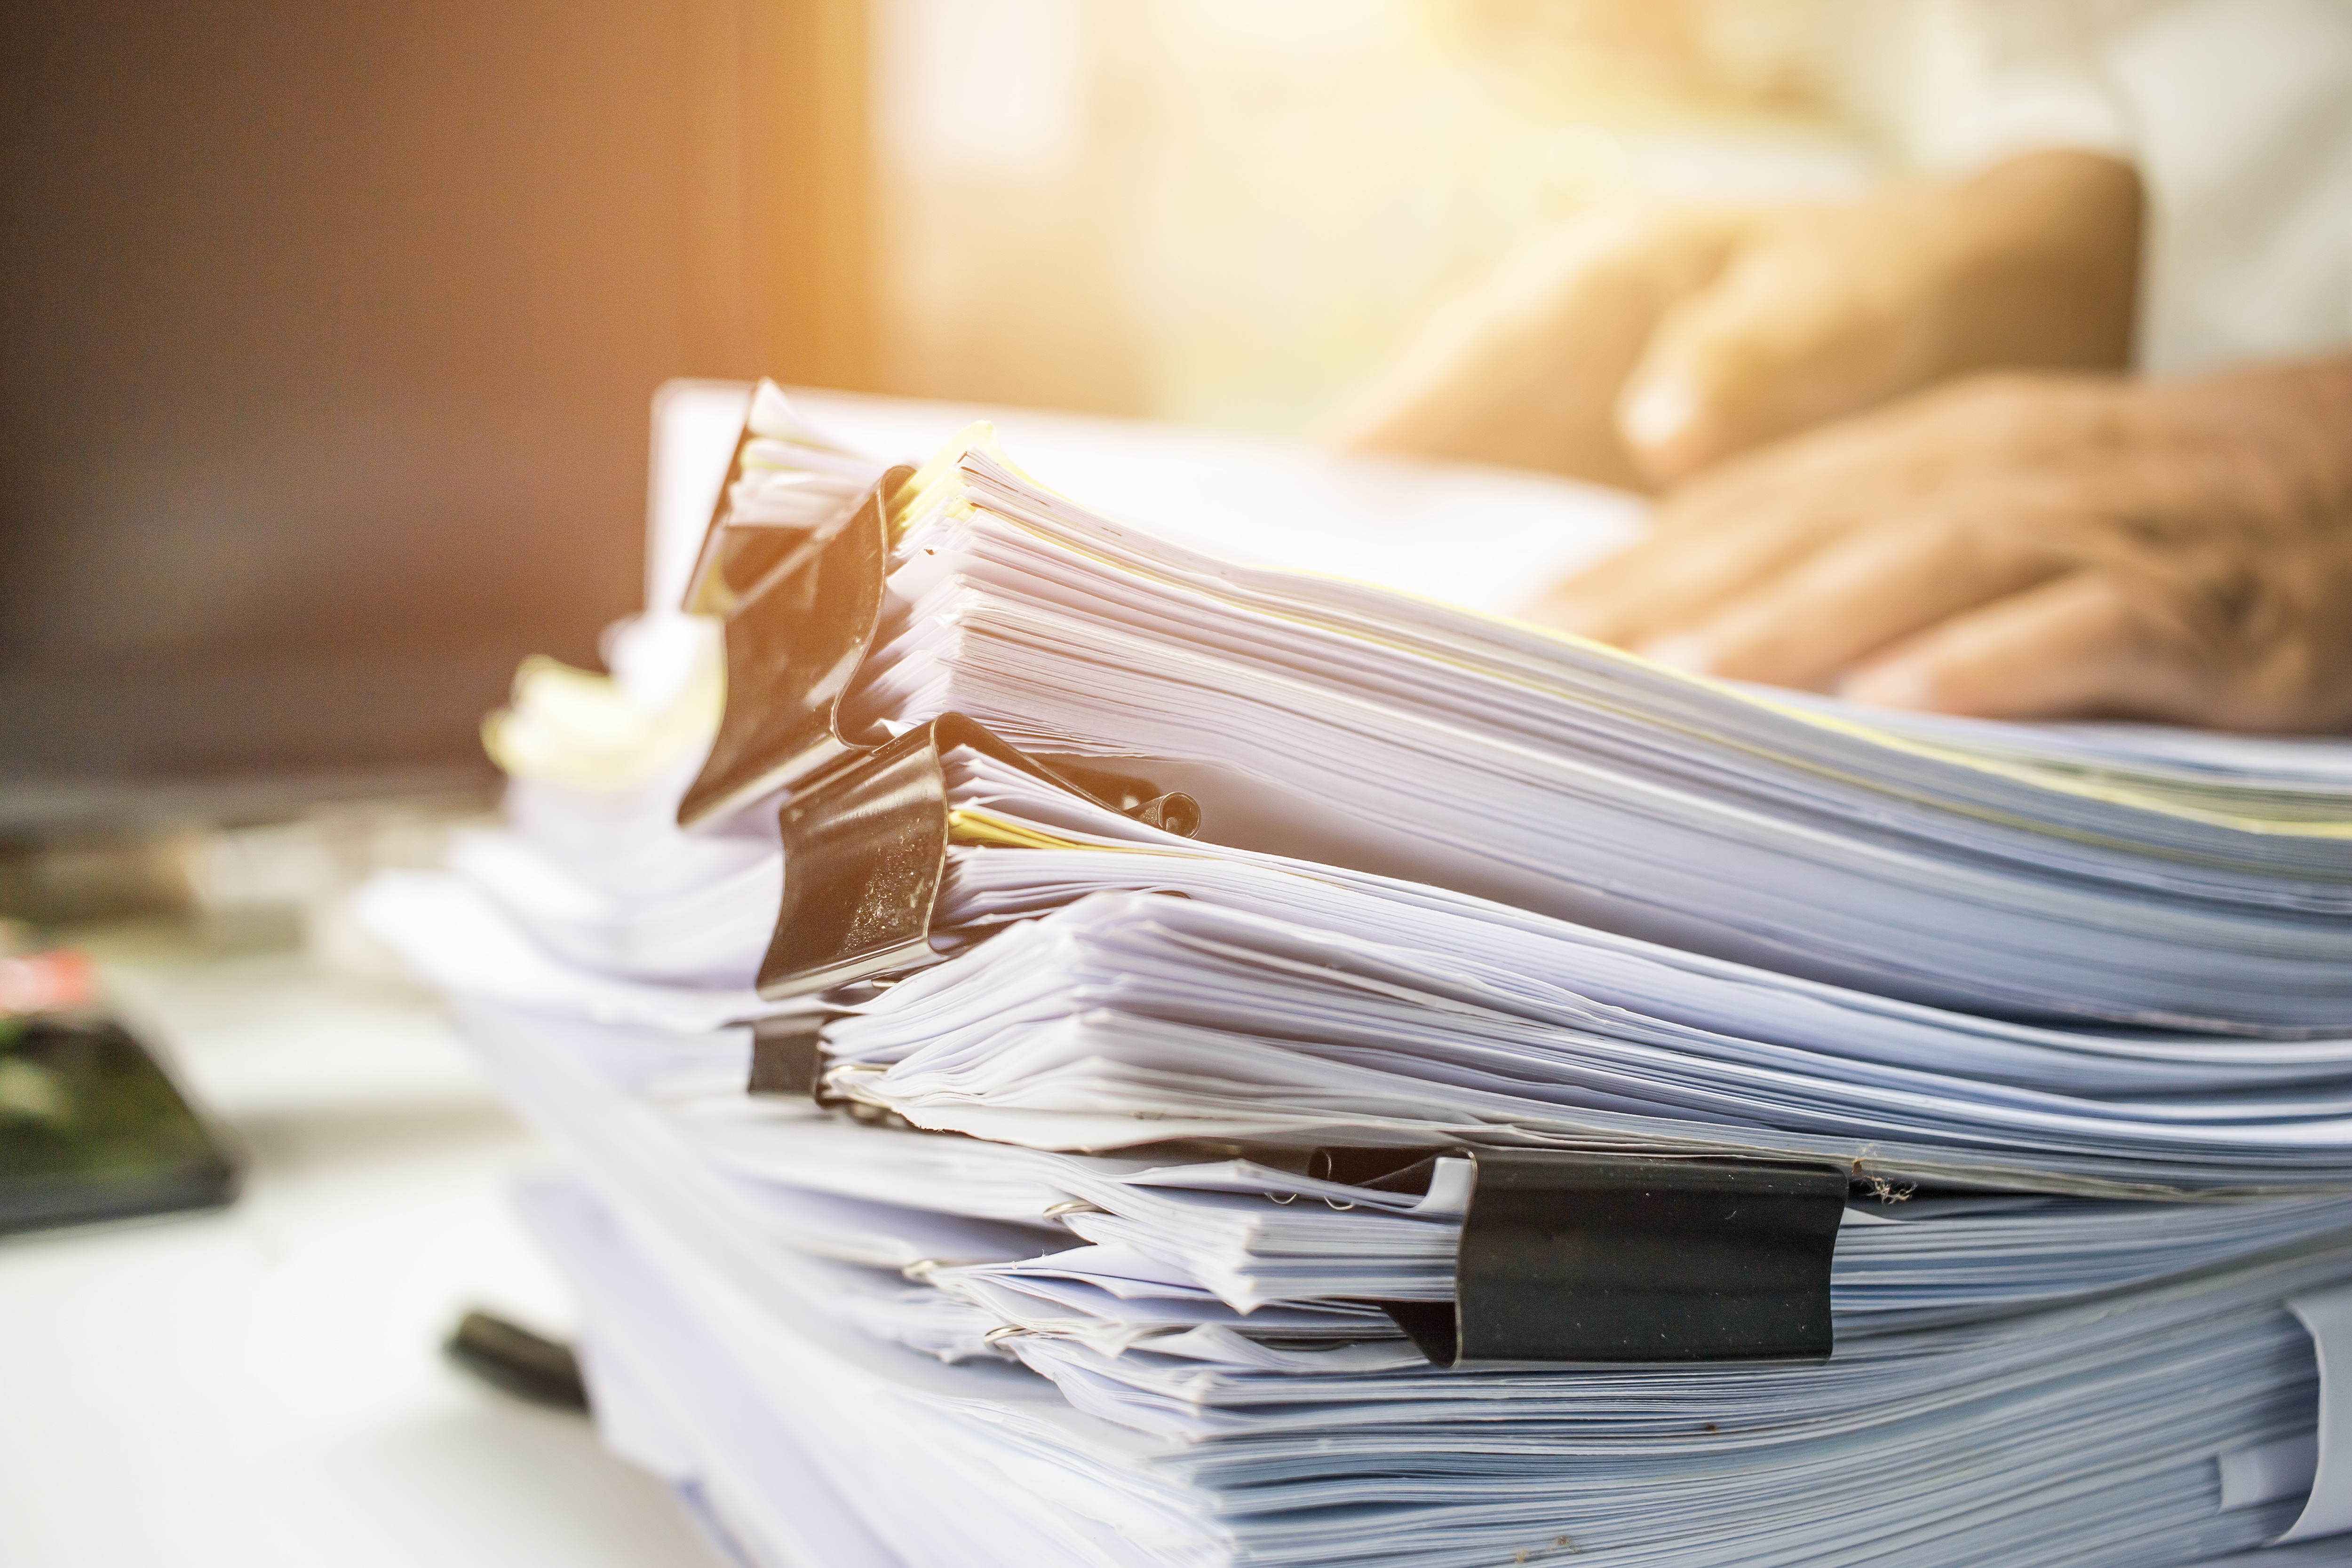 A large stack of papers with binder clips